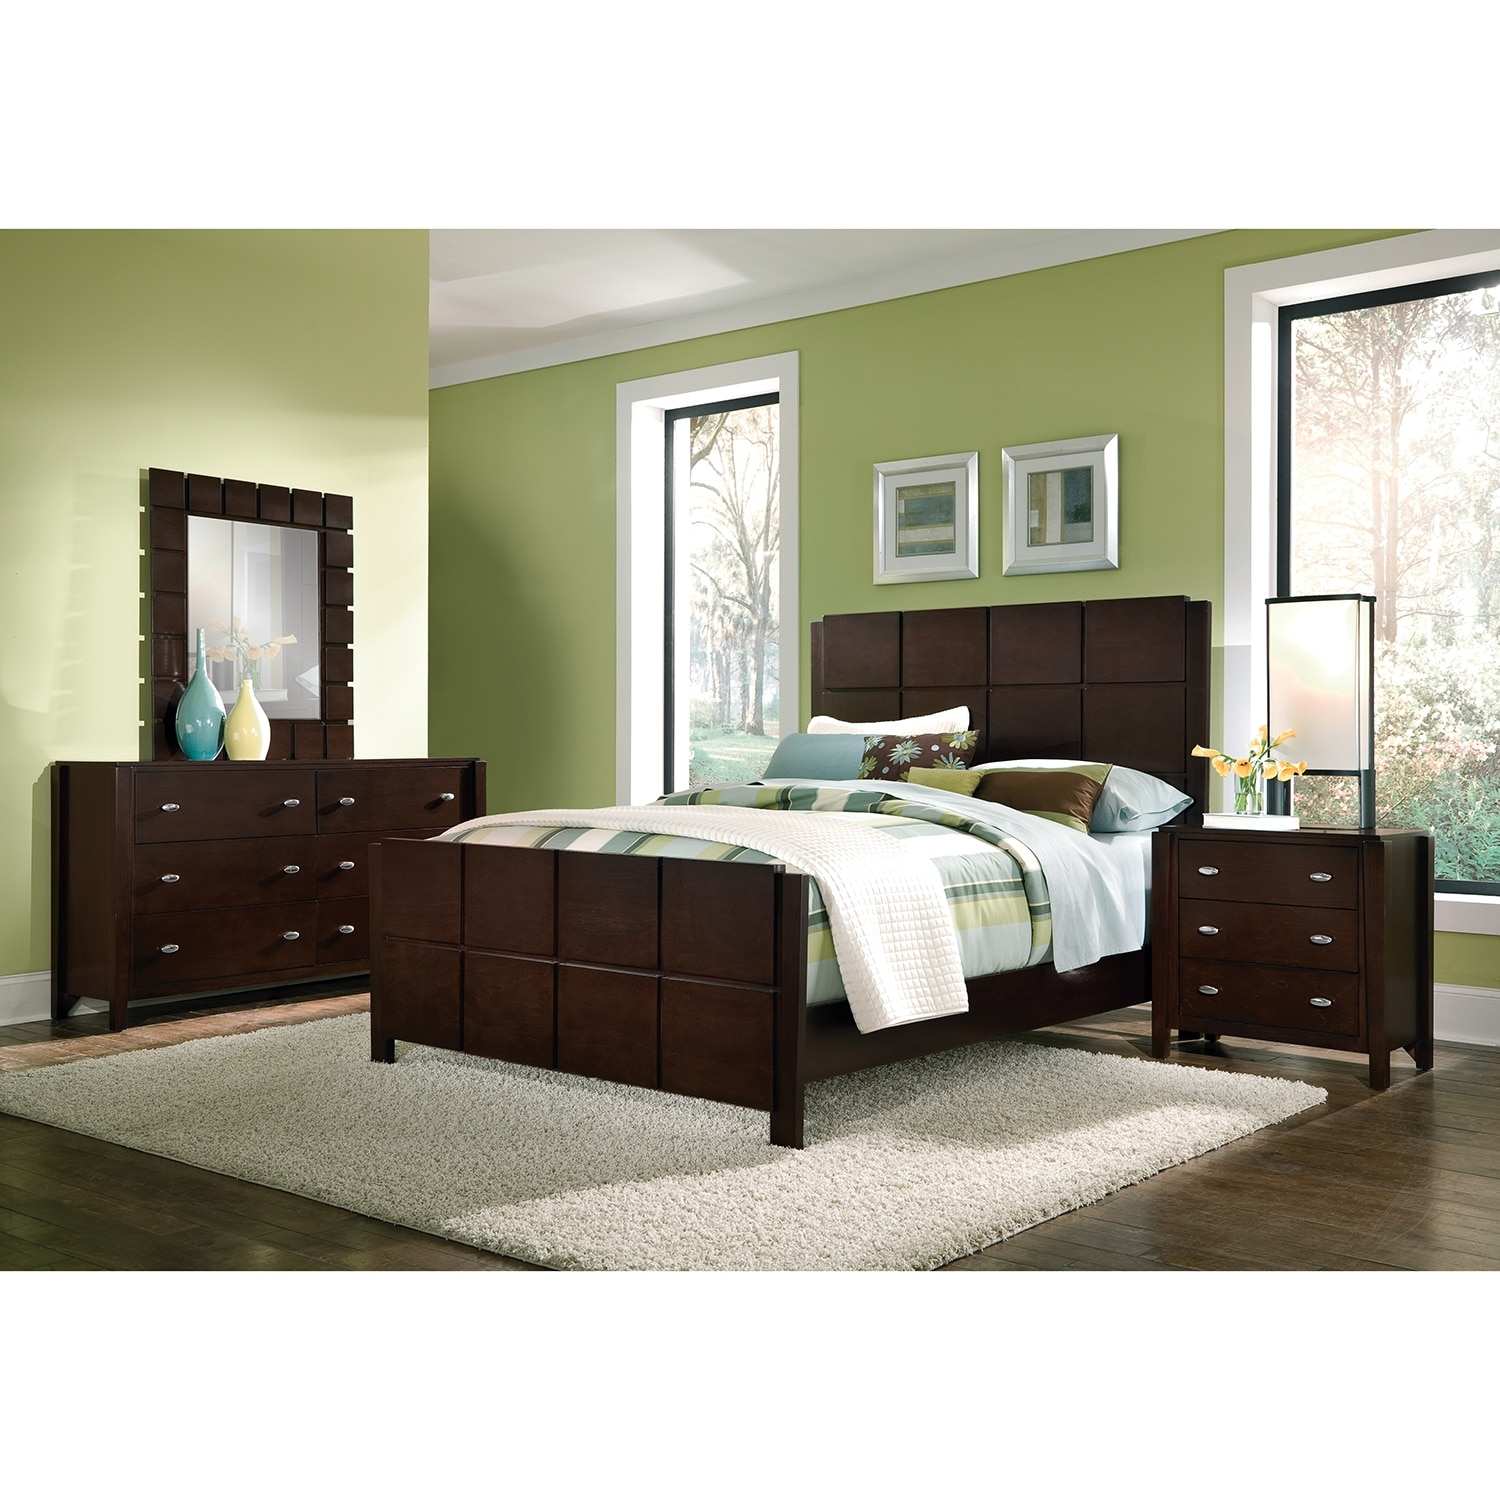 Mosaic 6Piece Queen Bedroom Set  Dark Brown  Value City Furniture